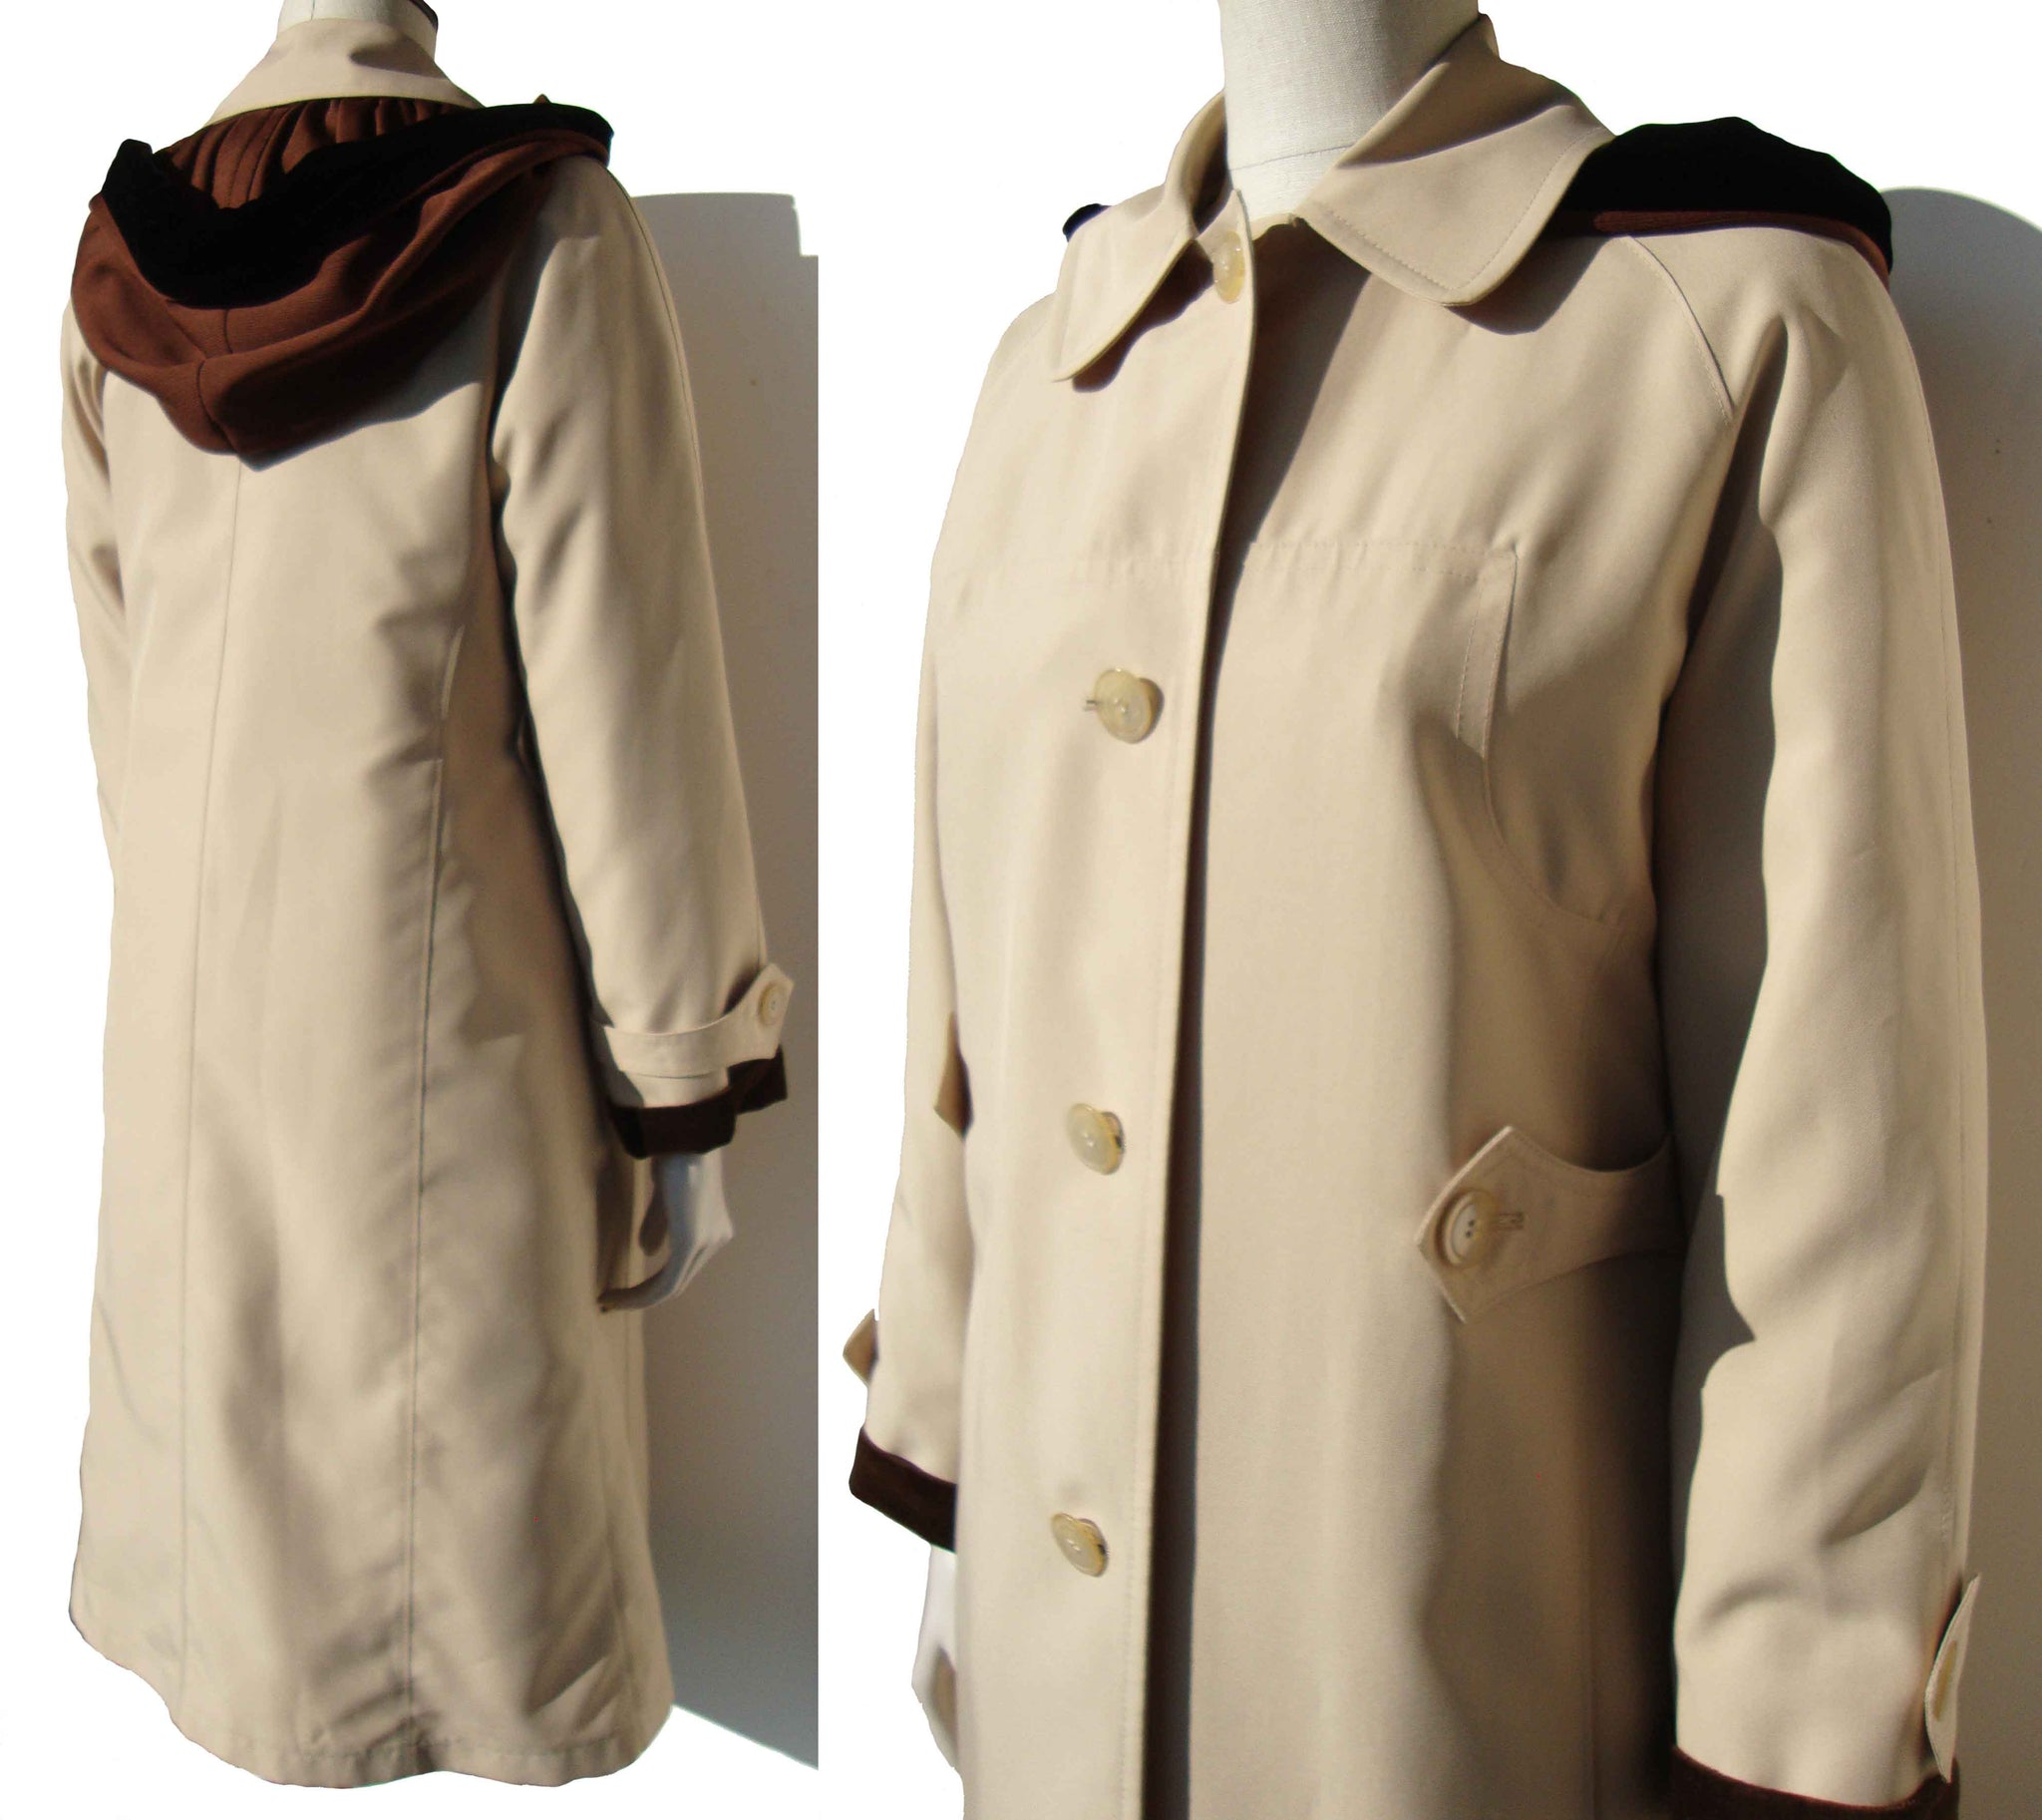 Vintage Trench Coat Misty Harbor Spy Girl Raincoat M